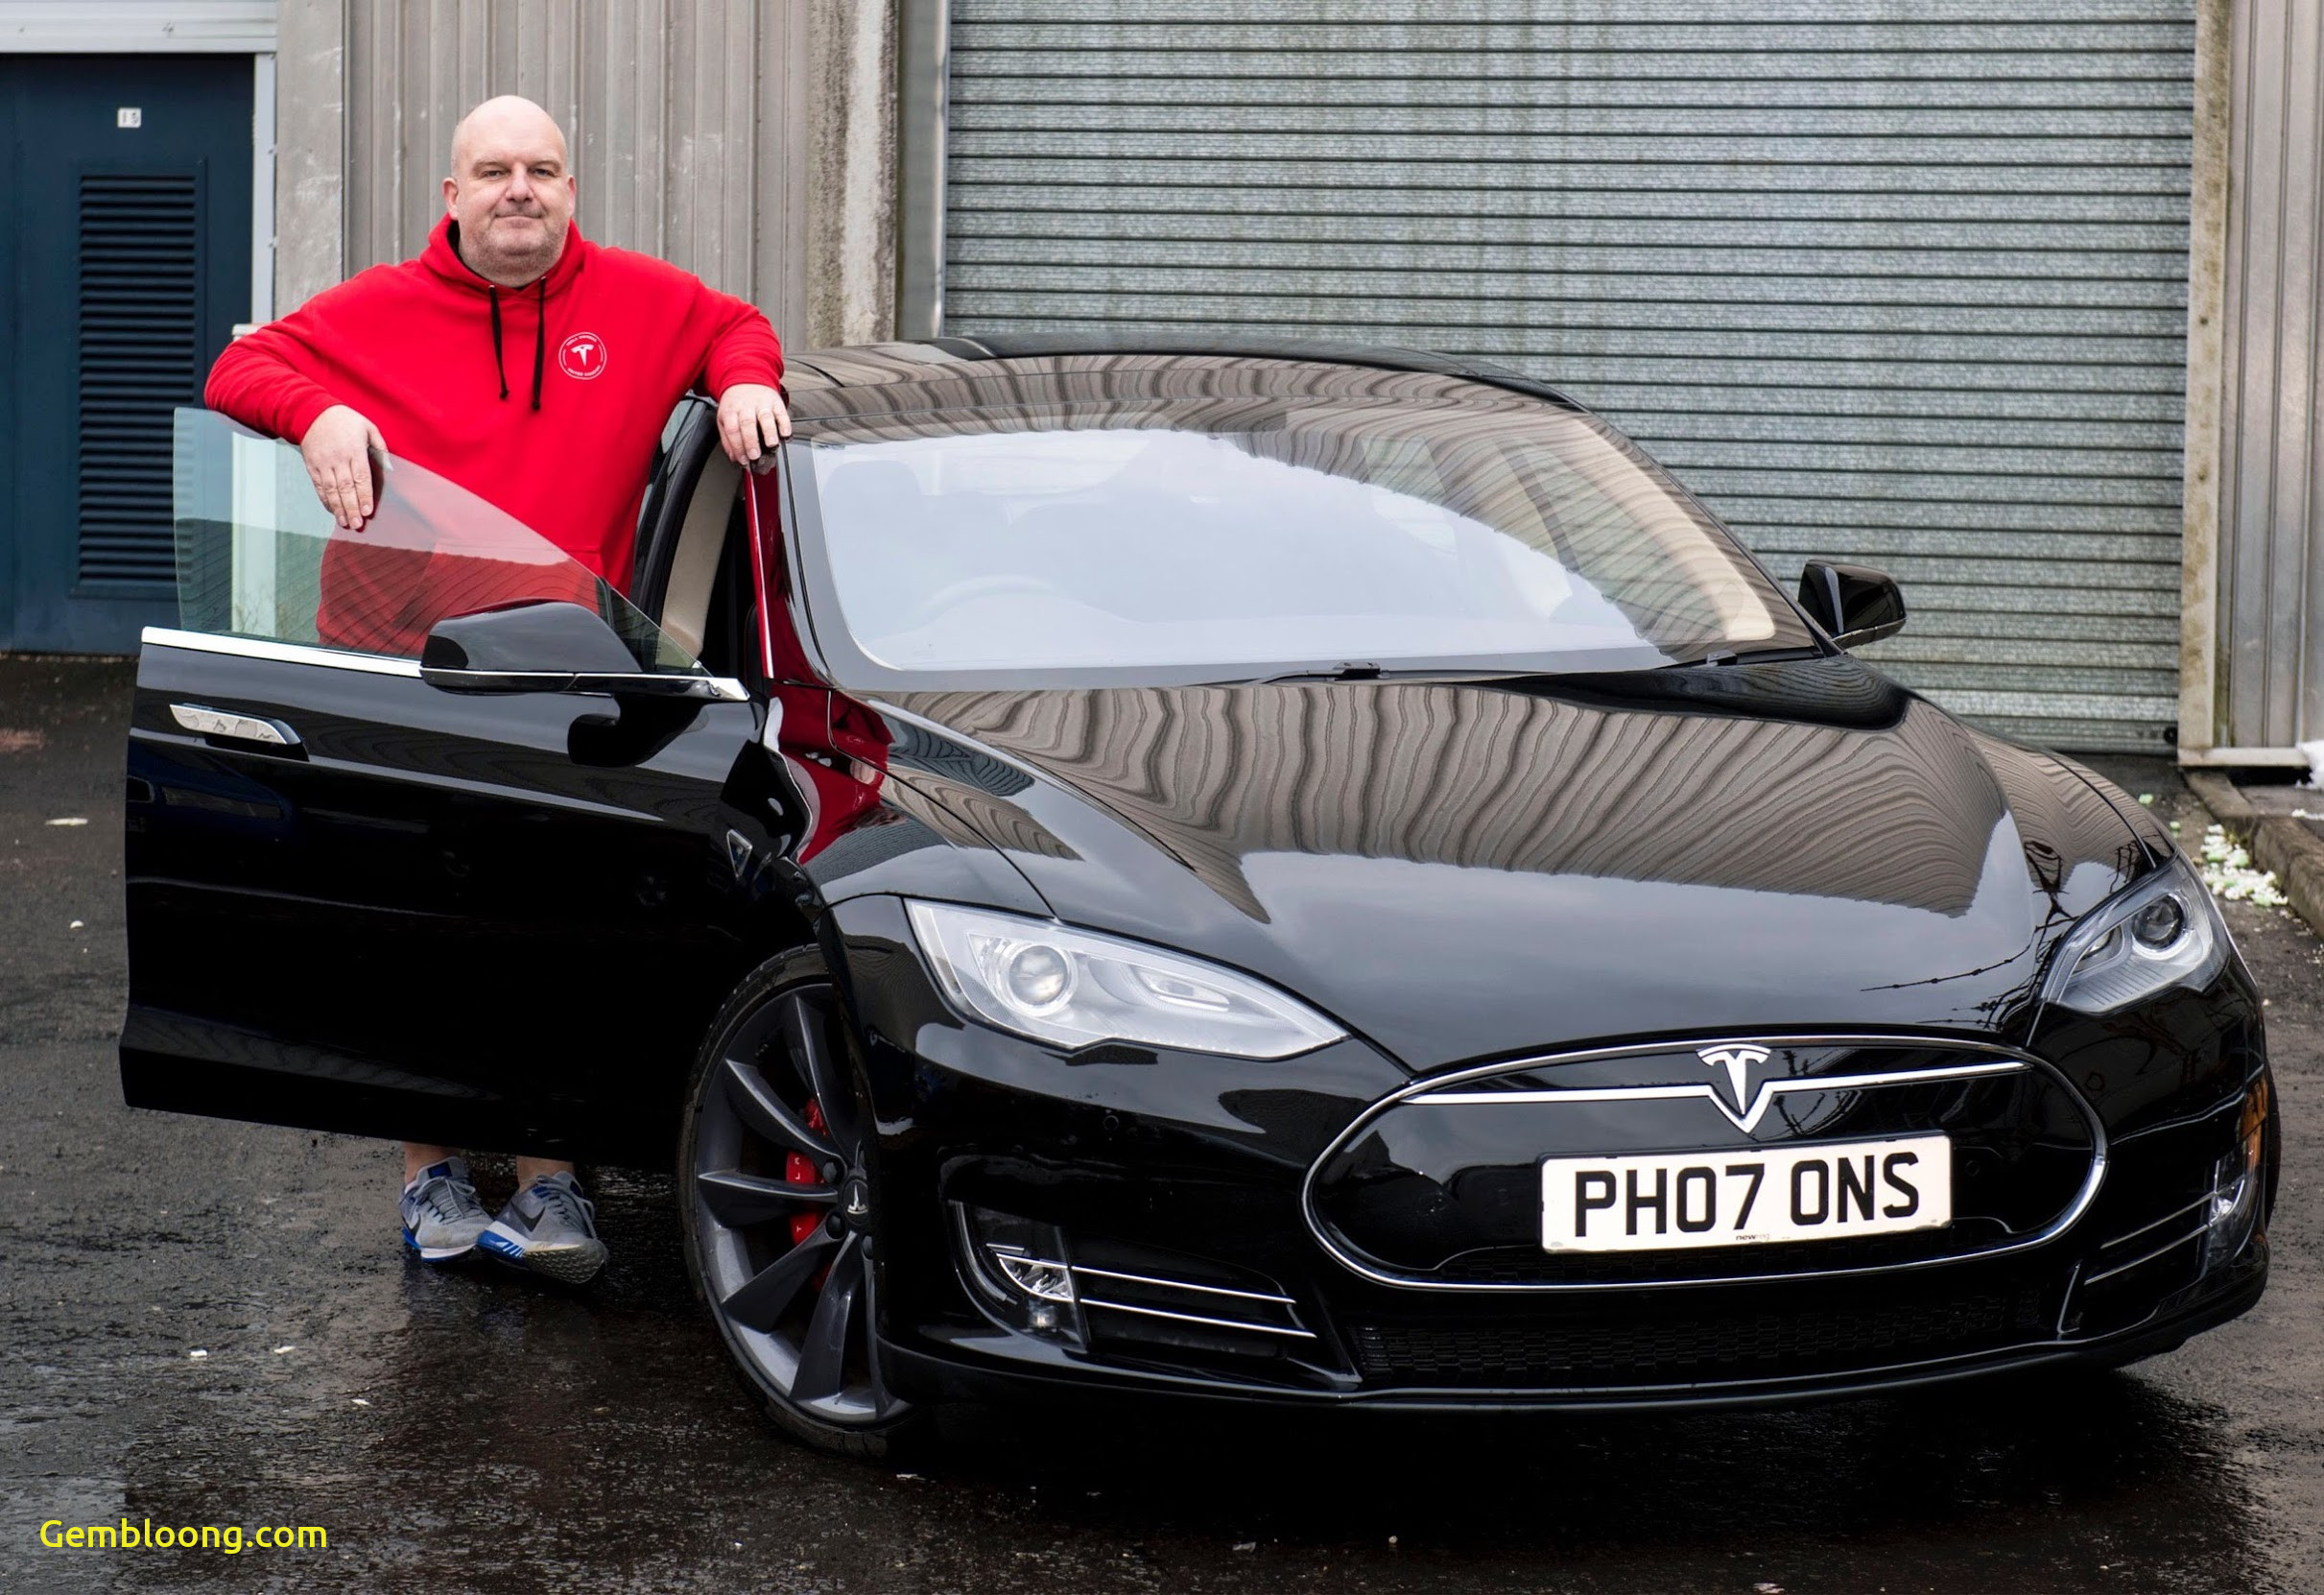 Tesla Ownership Inspirational Tesla Owner Donates His Model S to A Museum Exhibit In